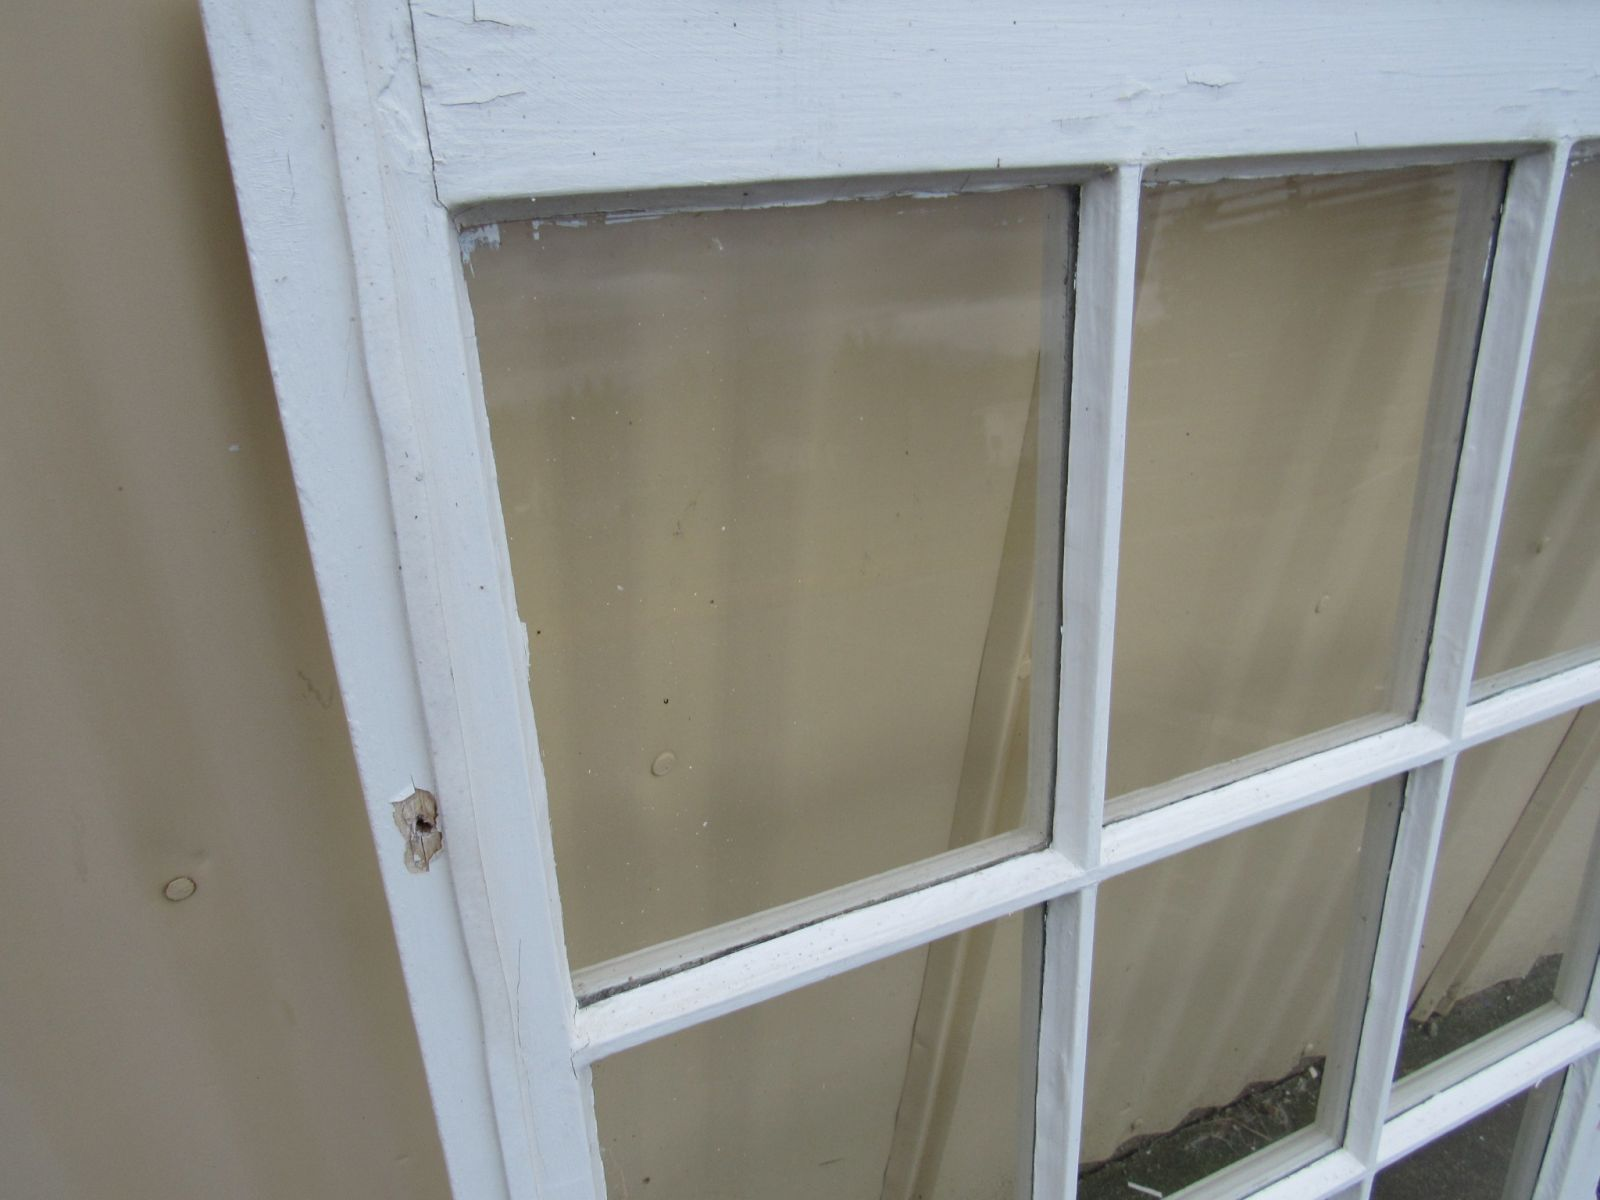 Handcrafted Antique Exterior True Divided Window Type D 38in x 30in Wood